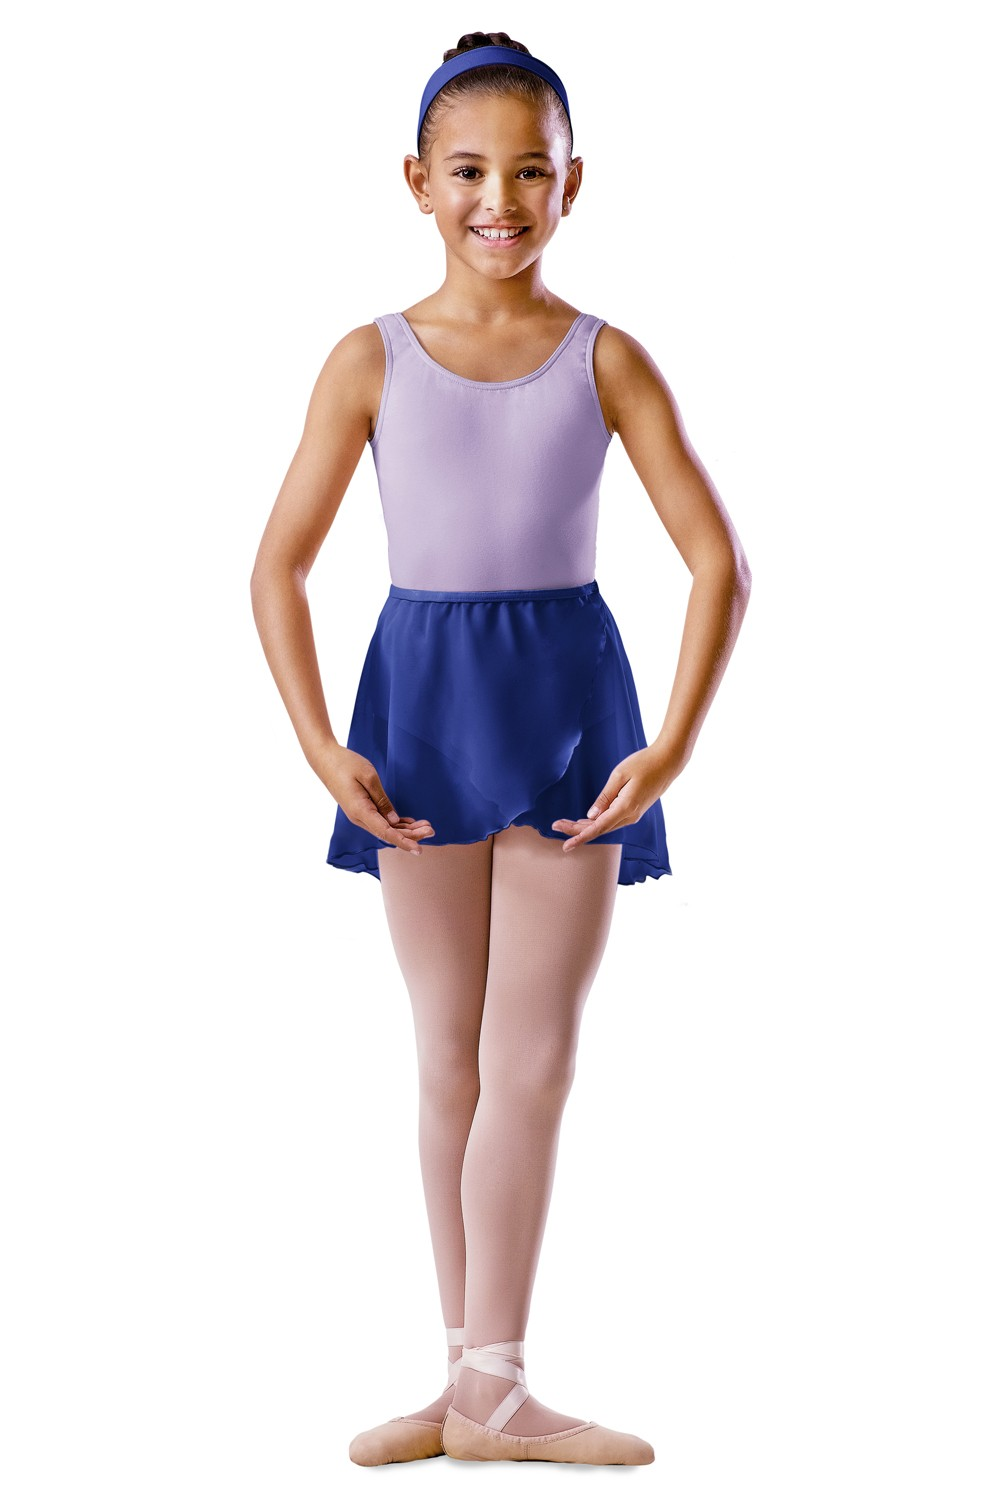 Jupe Portefeuille Children's Dance Uniforms